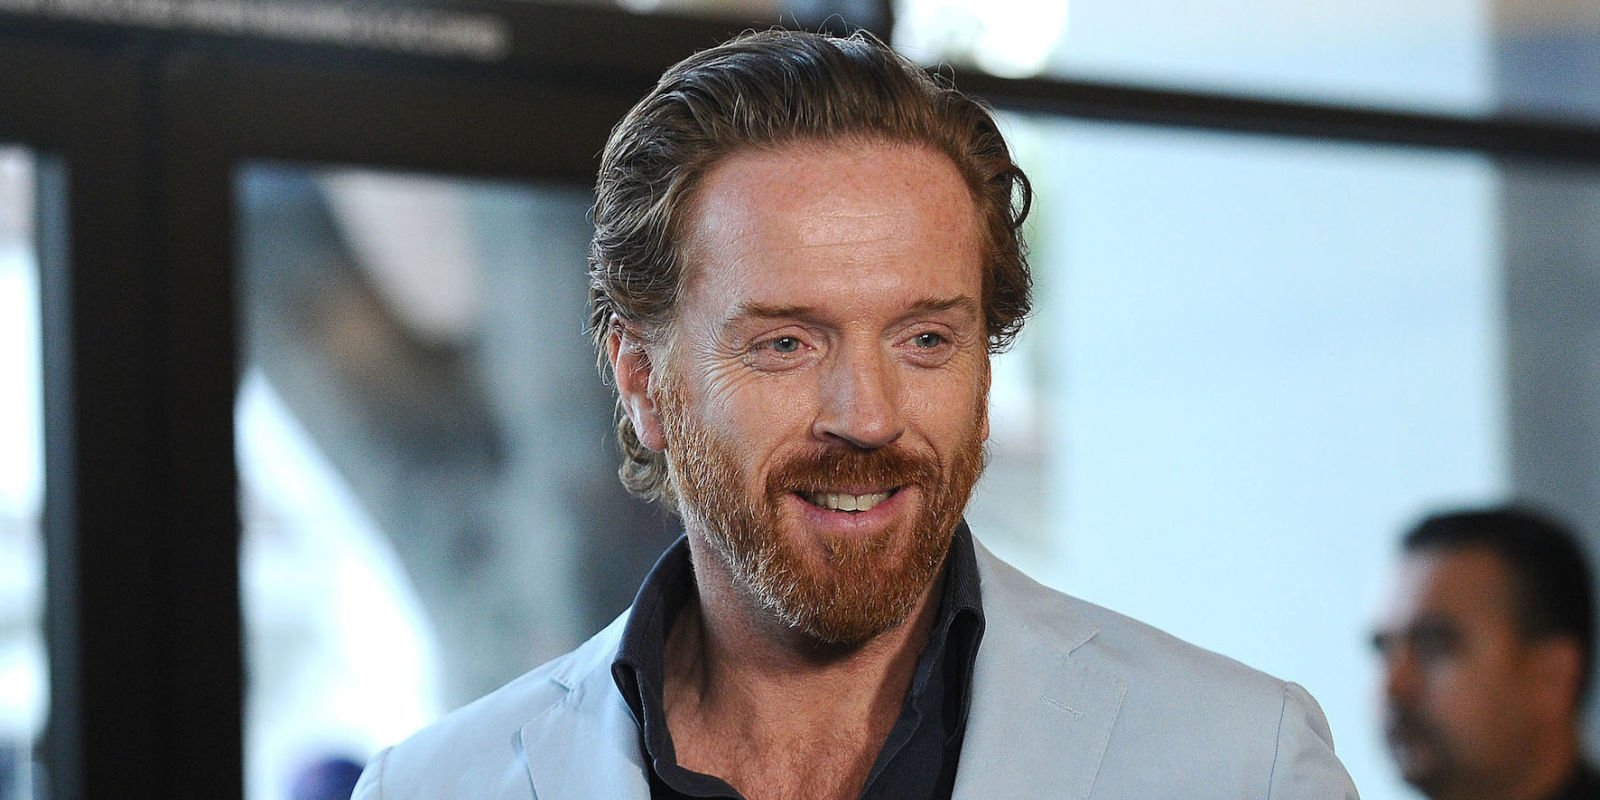 Homeland star Damian Lewis is completely unrecognisable in new movie based on Toronto Mayor scandal